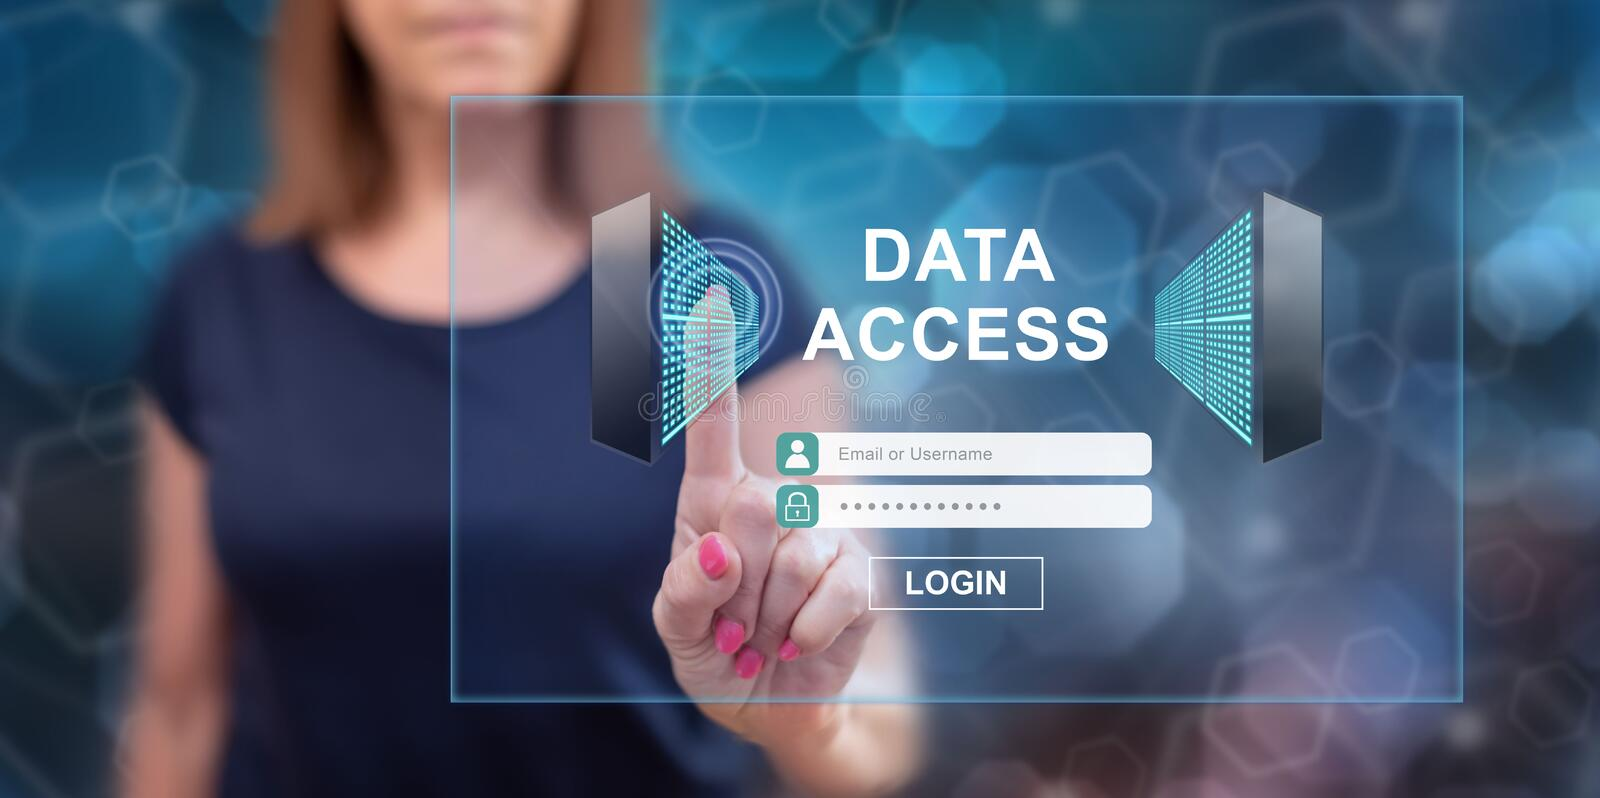 Woman touching a data access concept royalty free illustration